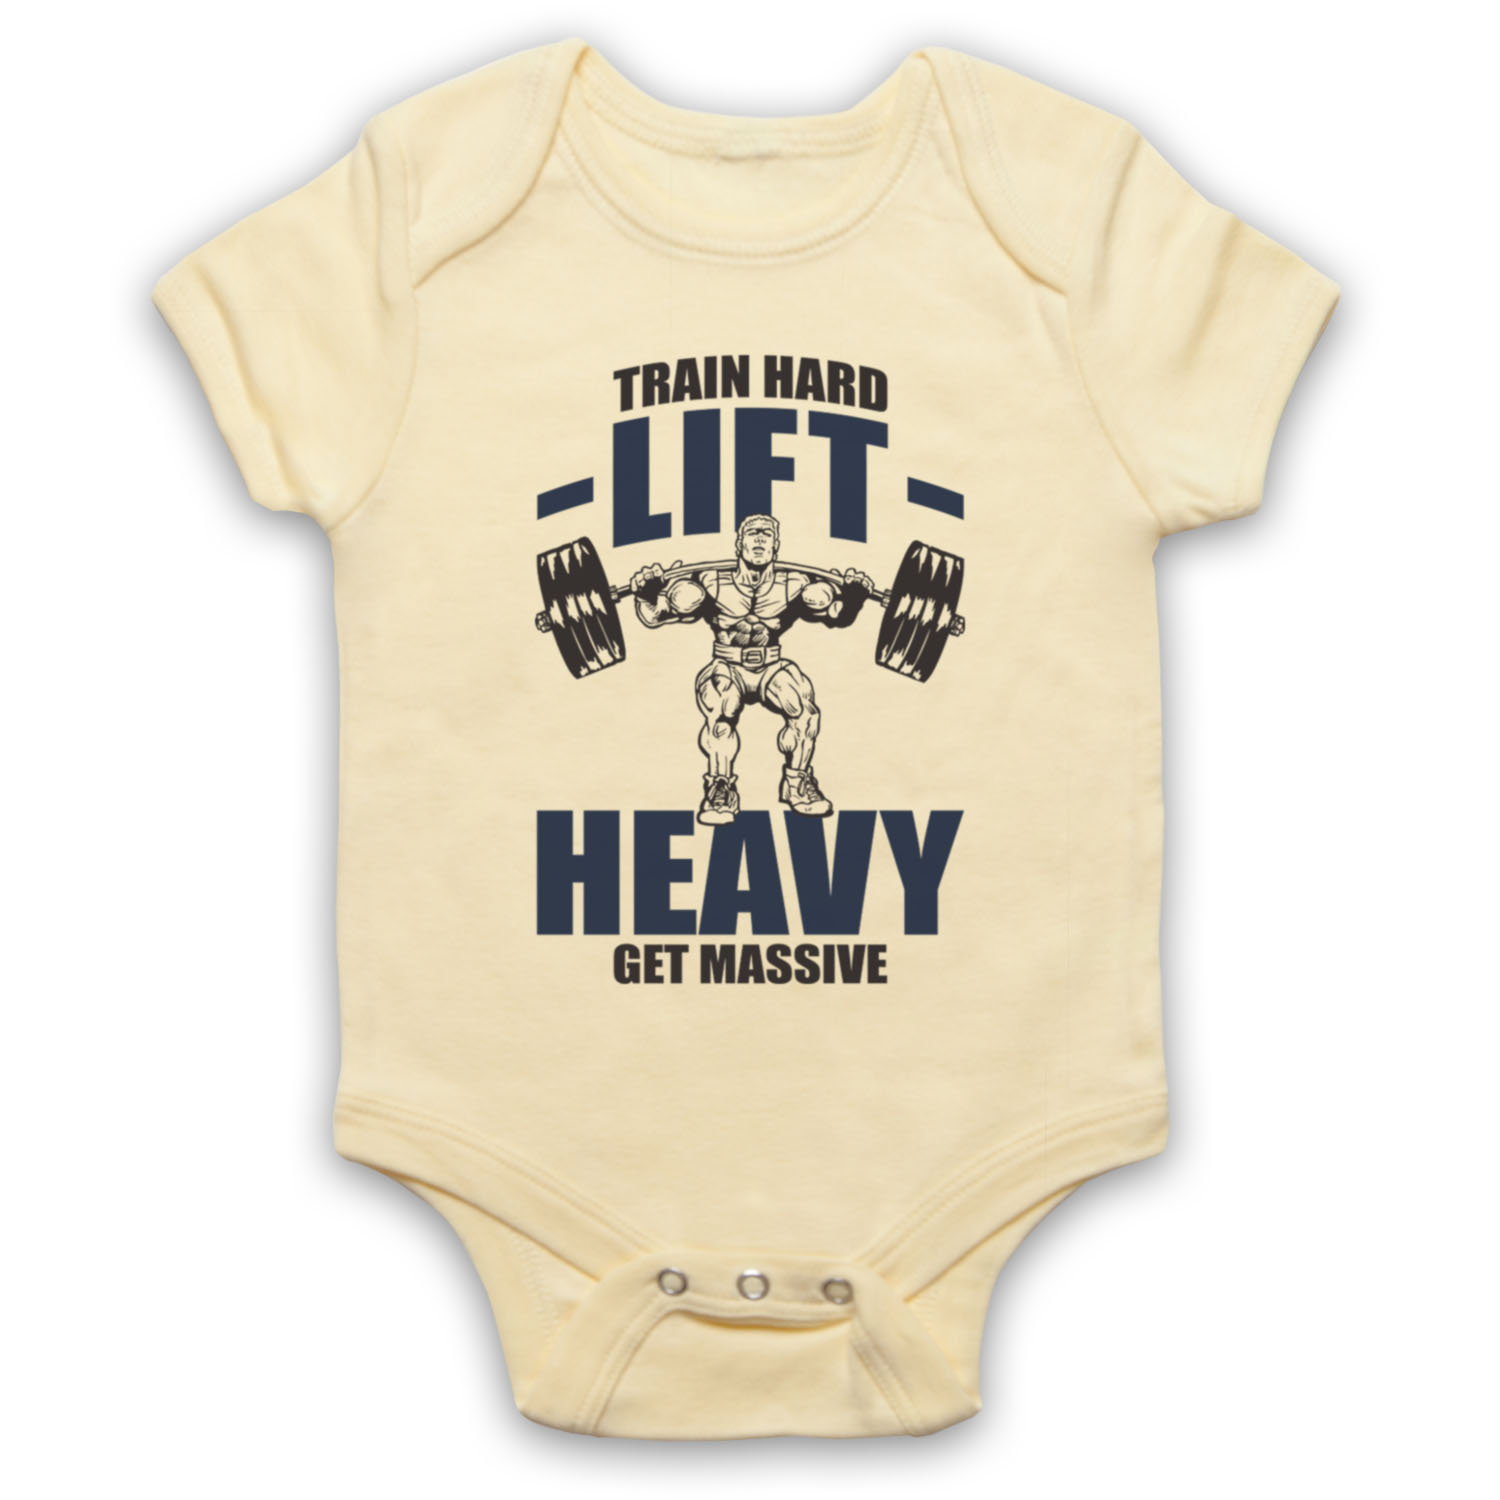 TRAIN-HARD-LIFT-HEAVY-BODYBUILDING-GYM-WORKOUT-WEIGHT-BABY-GROW-BABYGROW-GIFT